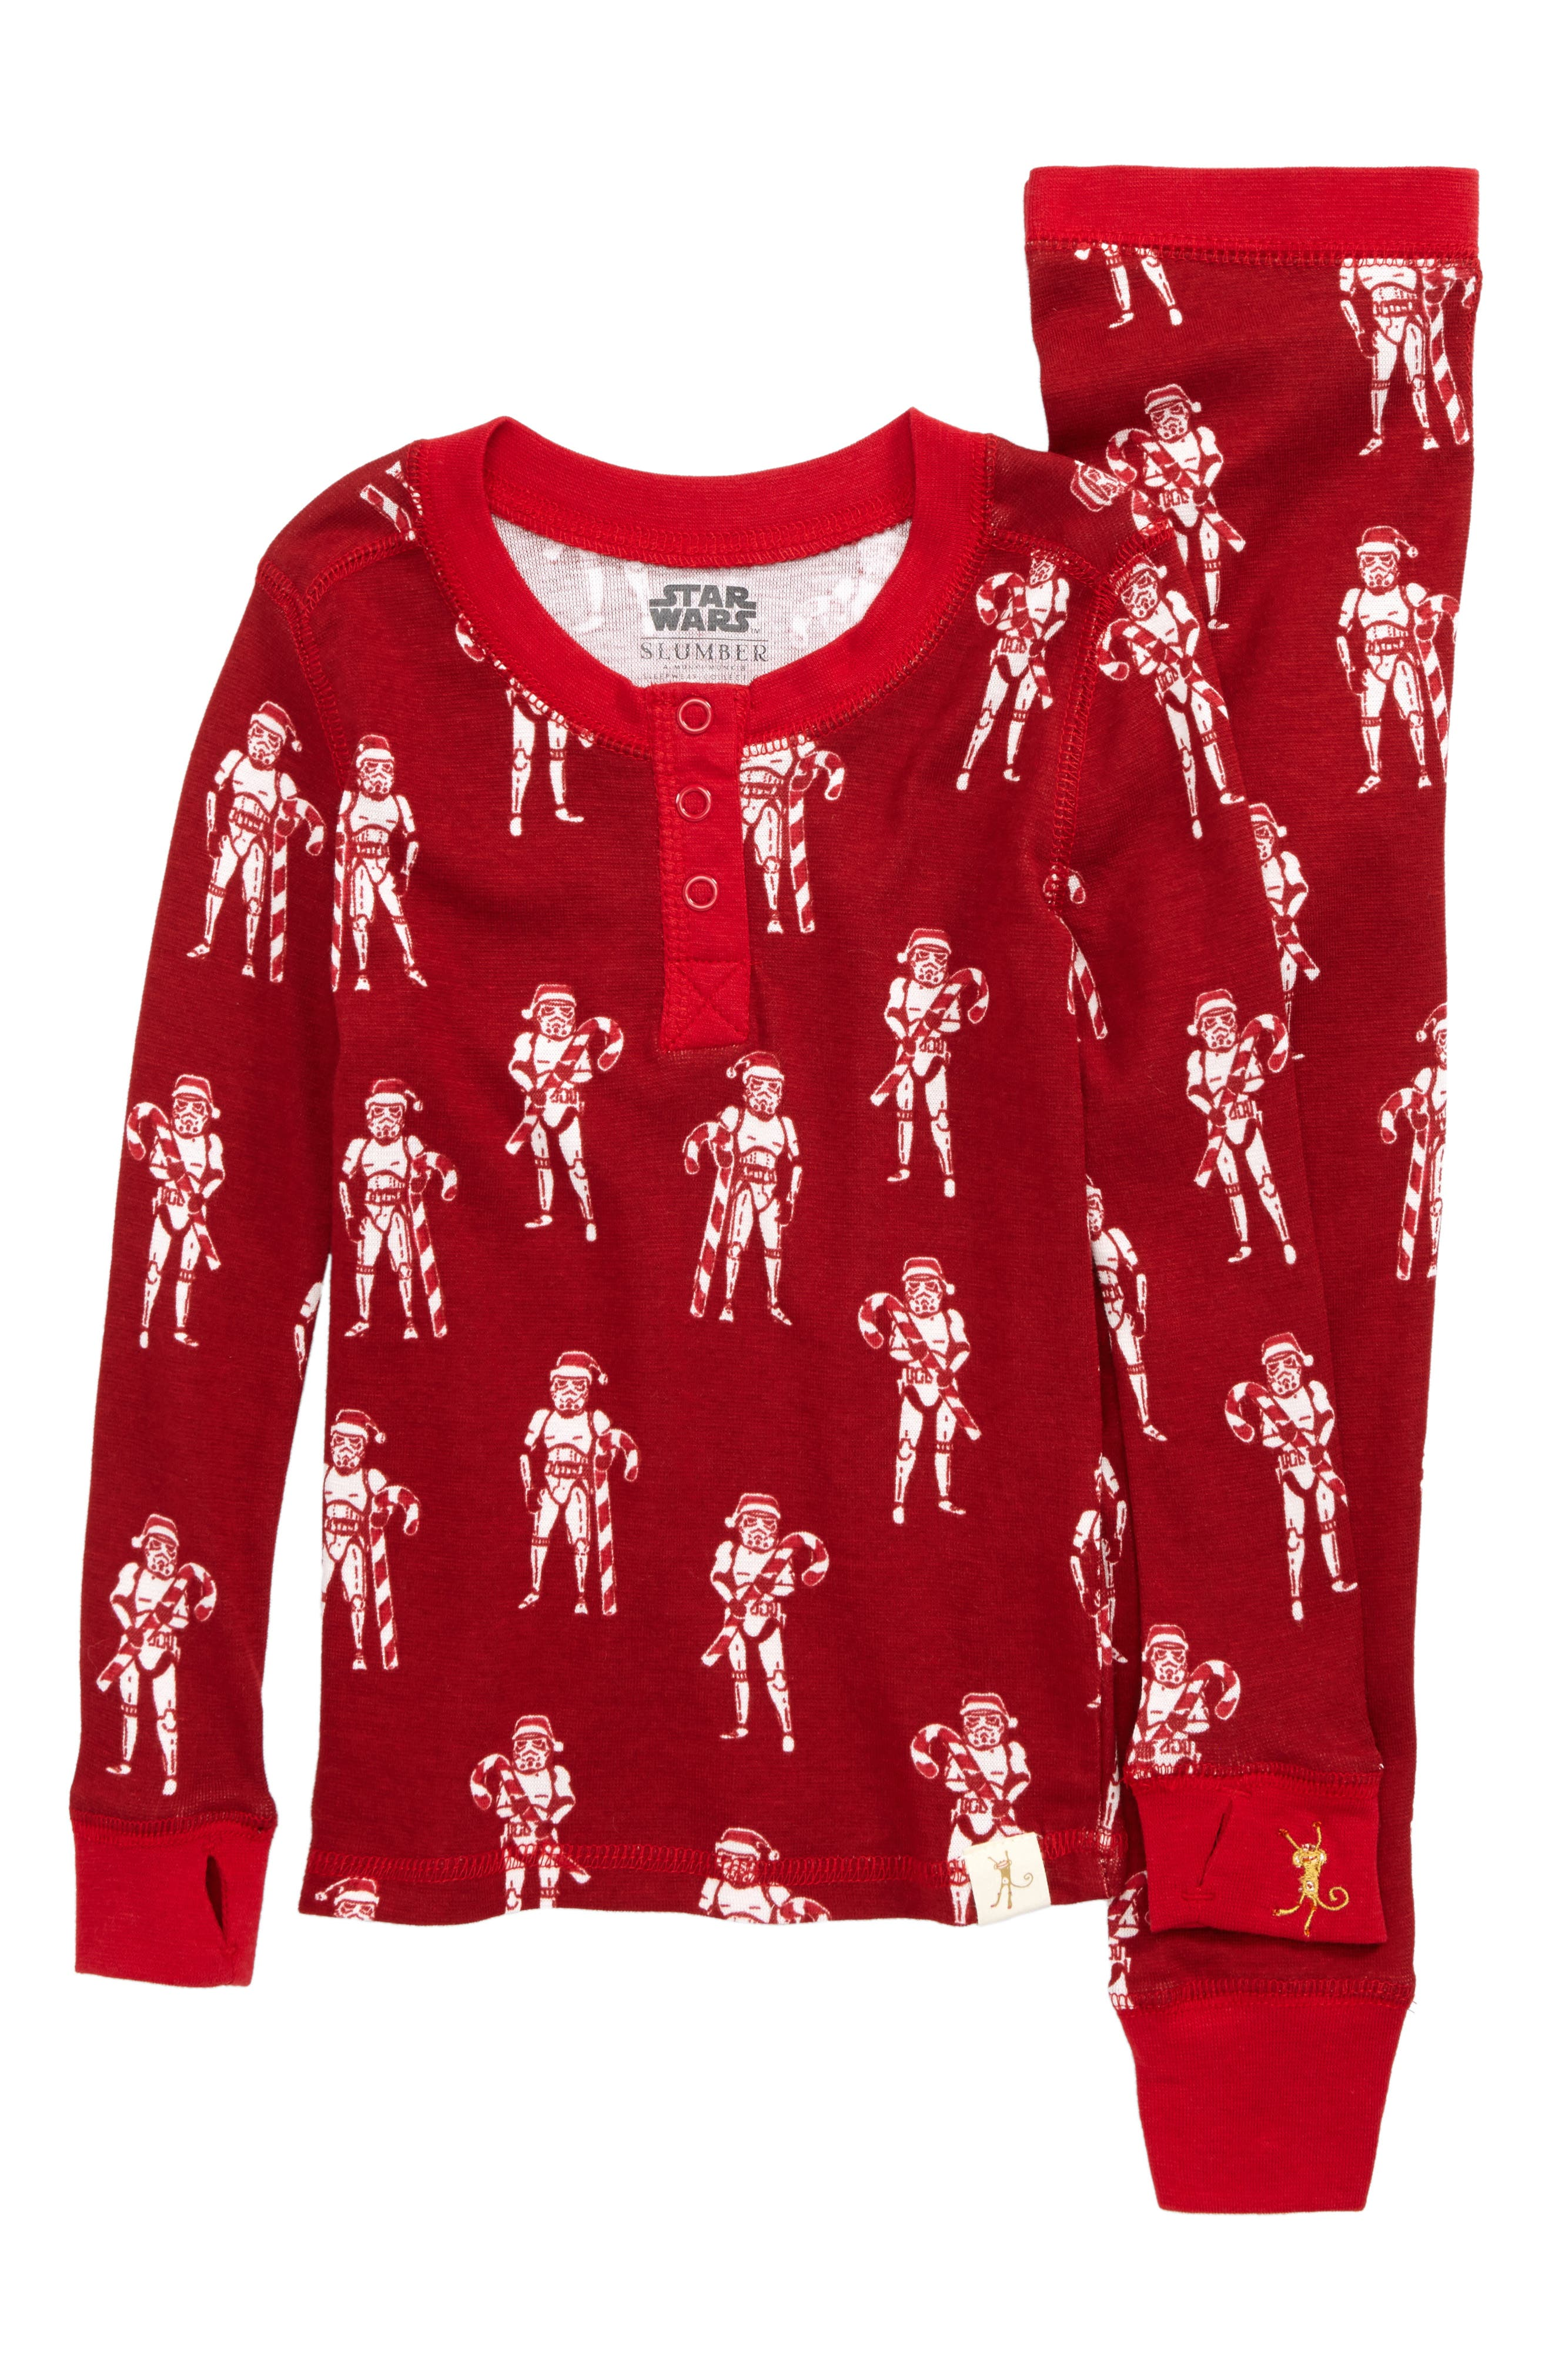 Star Wars<sup>™</sup> - Stormtroopers Fitted Two-Piece Pajamas,                         Main,                         color, 600